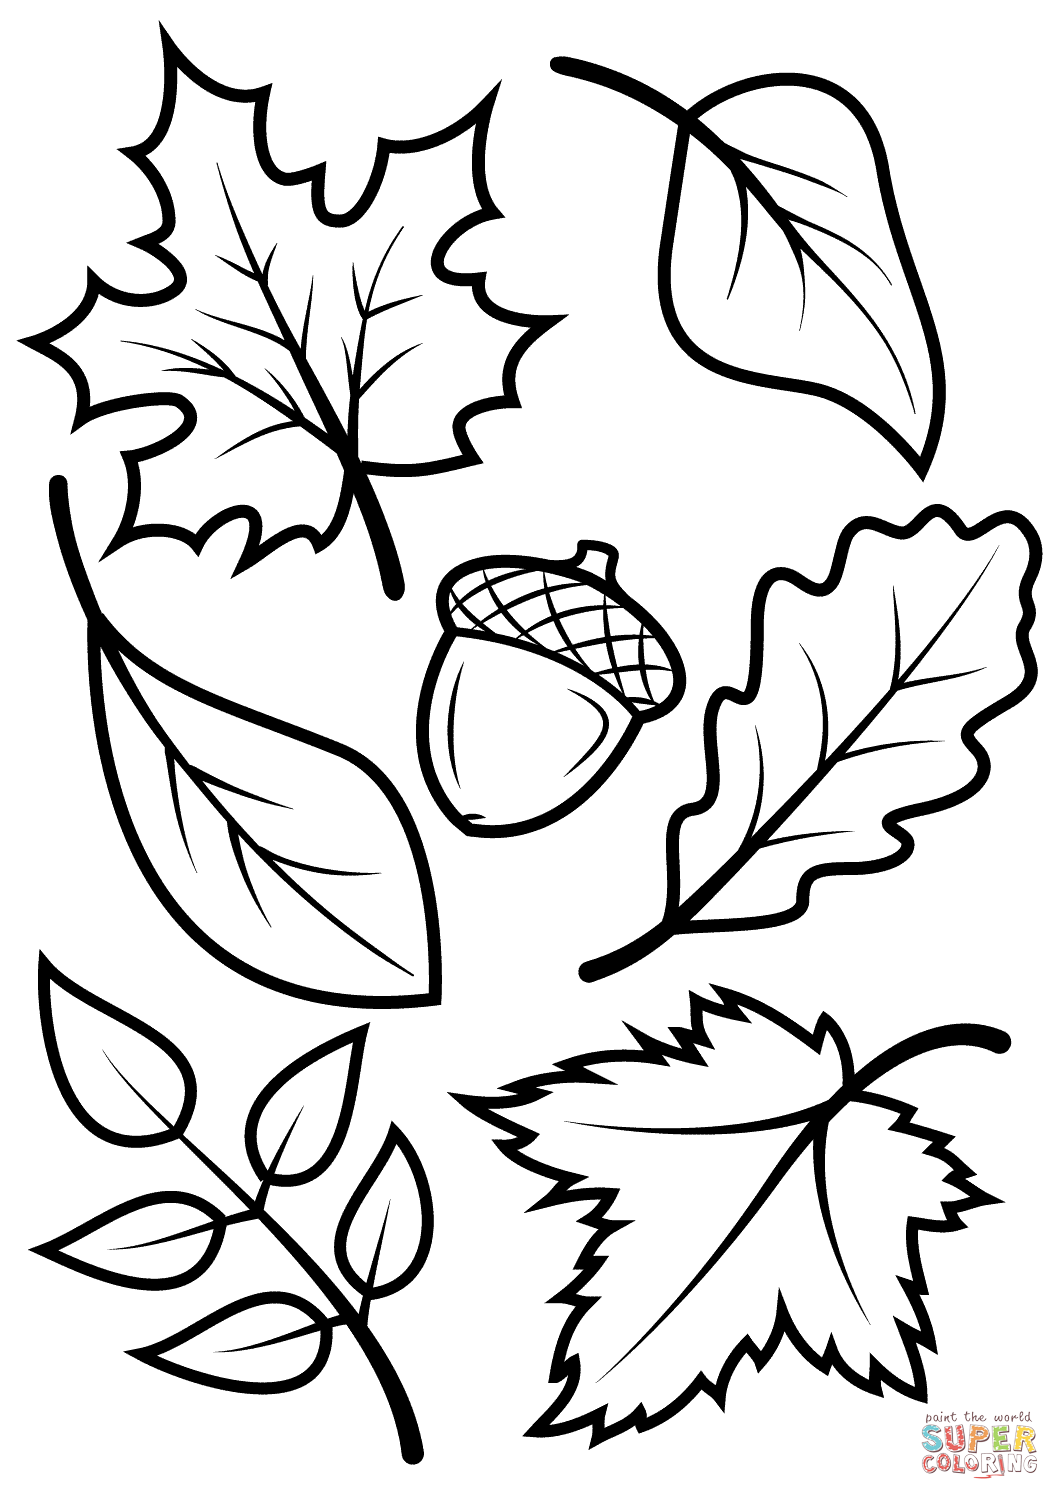 28 Coloring Page Of Leaves, Autumn Leaf Coloring Page